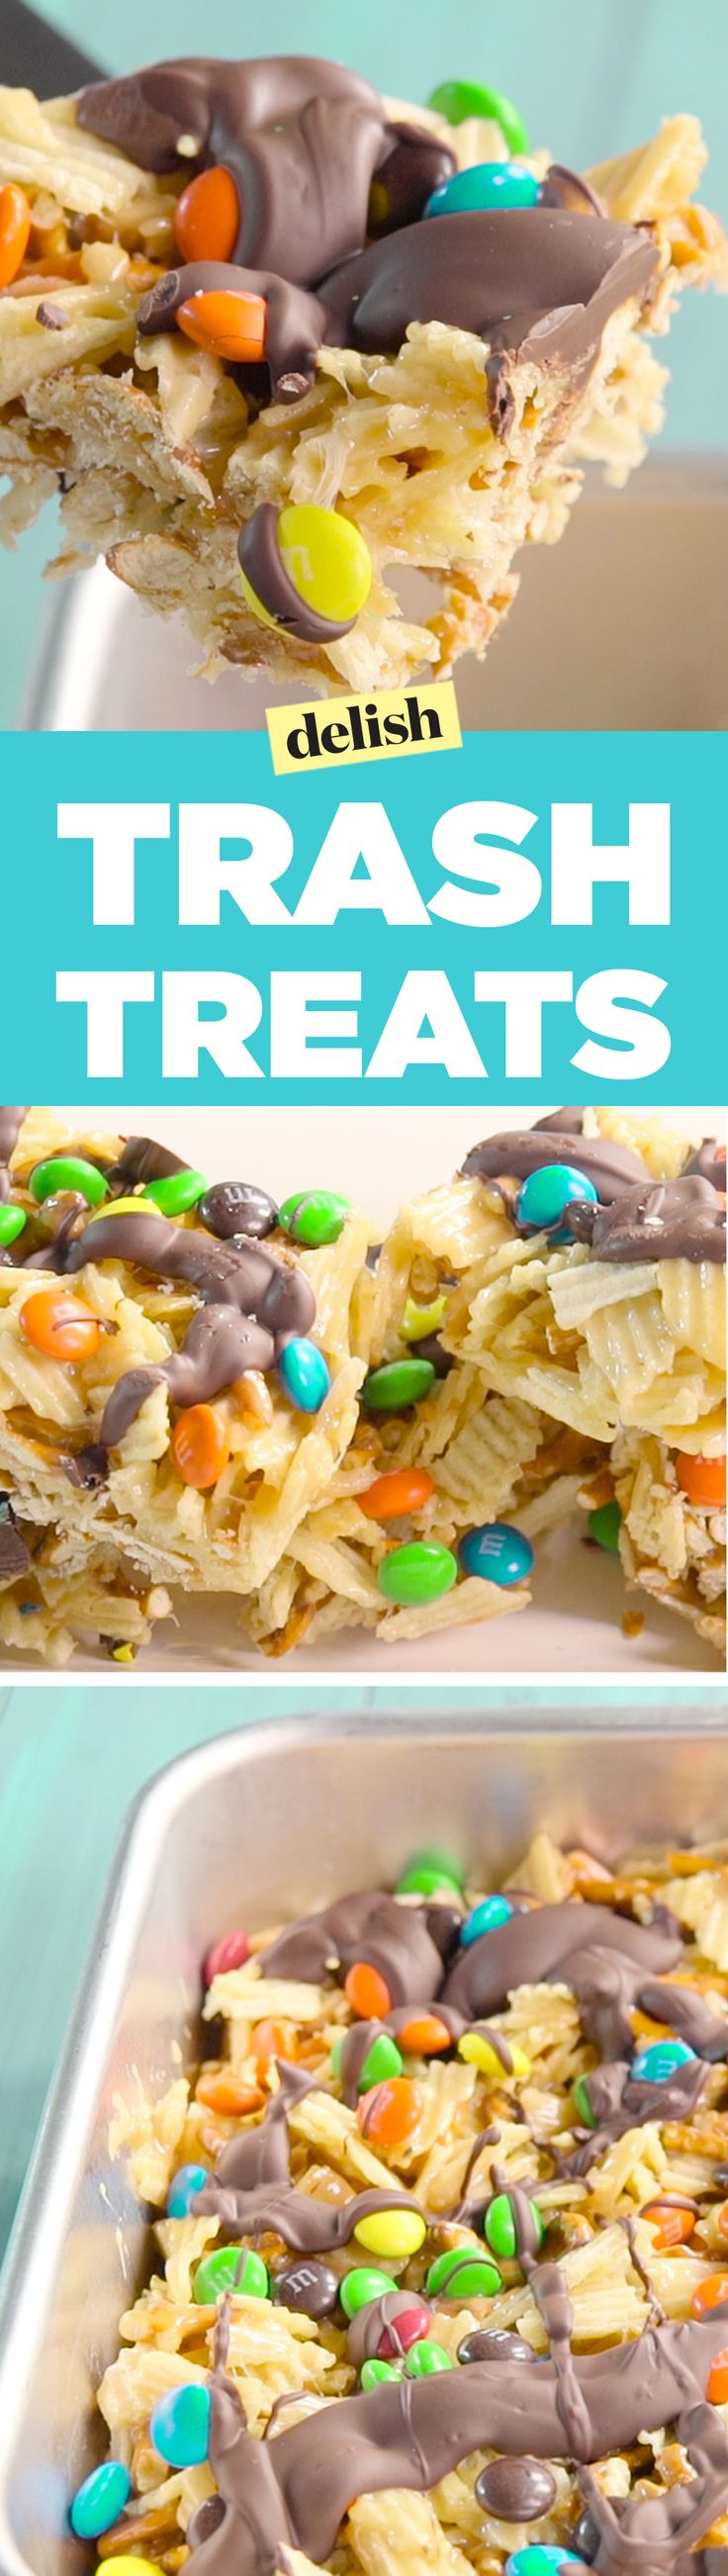 Trash treats beat rice krispie treats every time. Get the recipe on Delish.com.